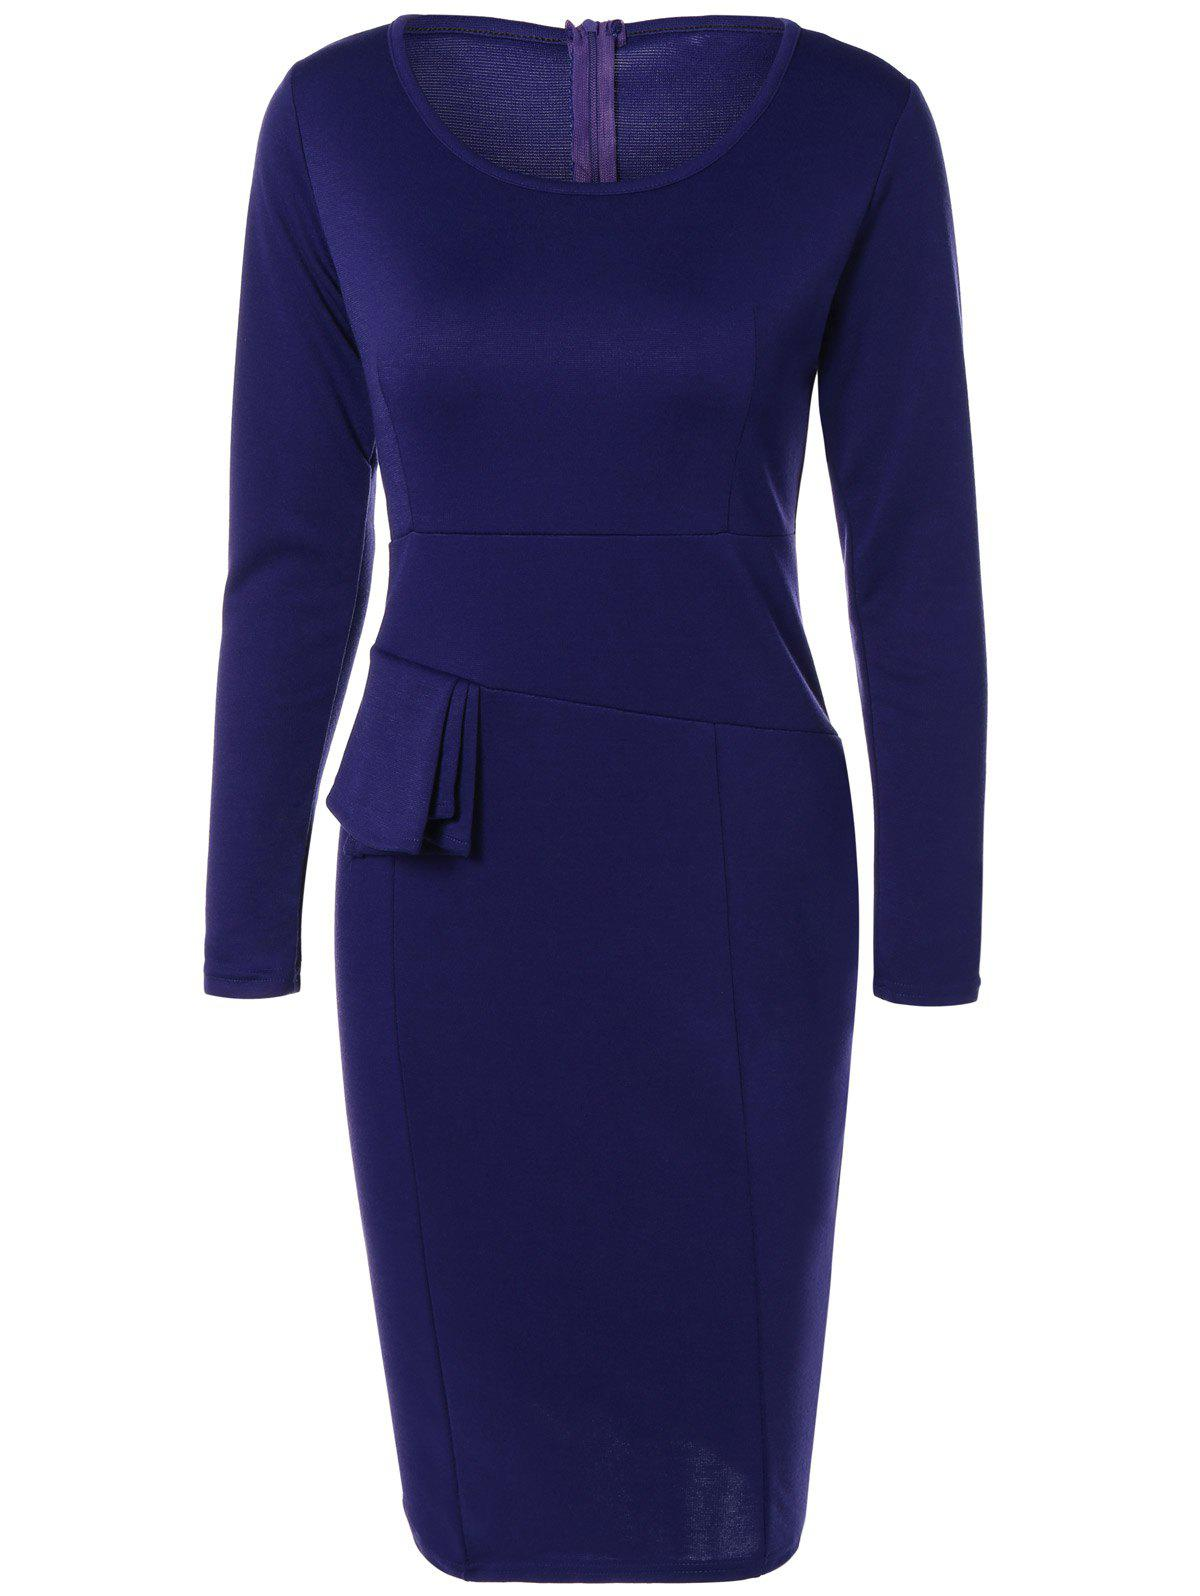 New Long Sleeve Knee Length Pencil Tight Dress